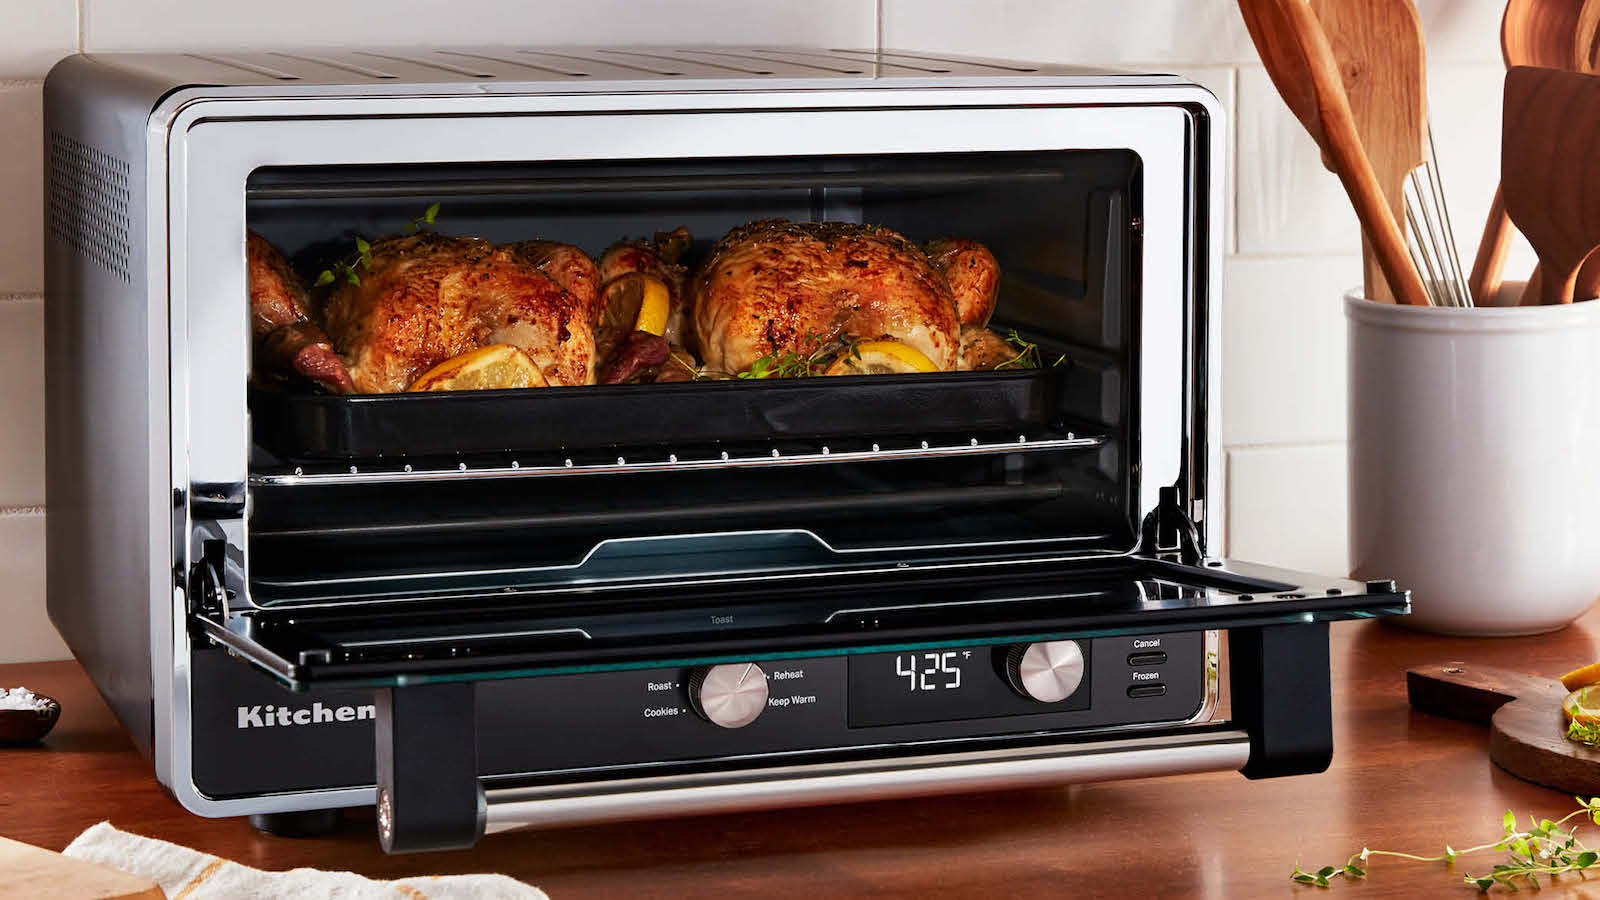 KitchenAid Digital Countertop Oven features 9 preset cooking functions